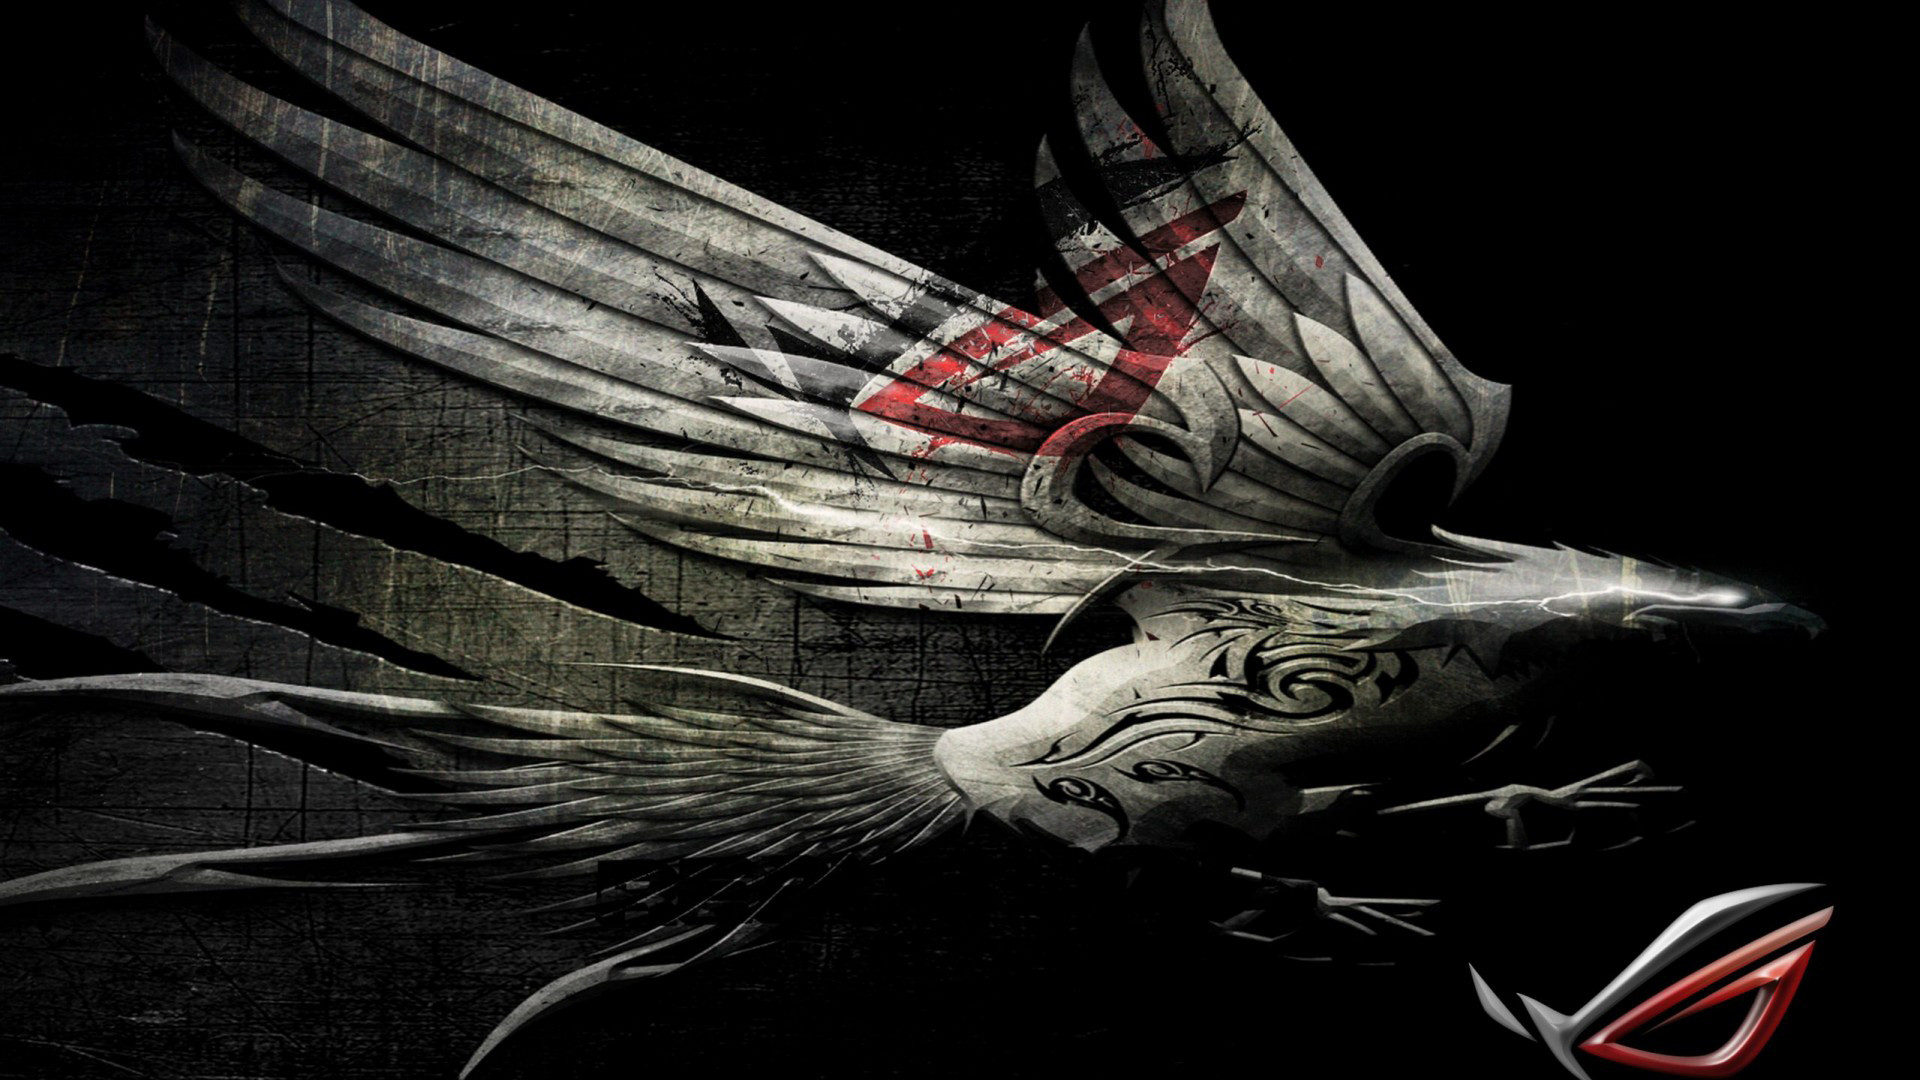 Asus Rog Republic Of Gamers Wallpaper High Resolution | Apps ..